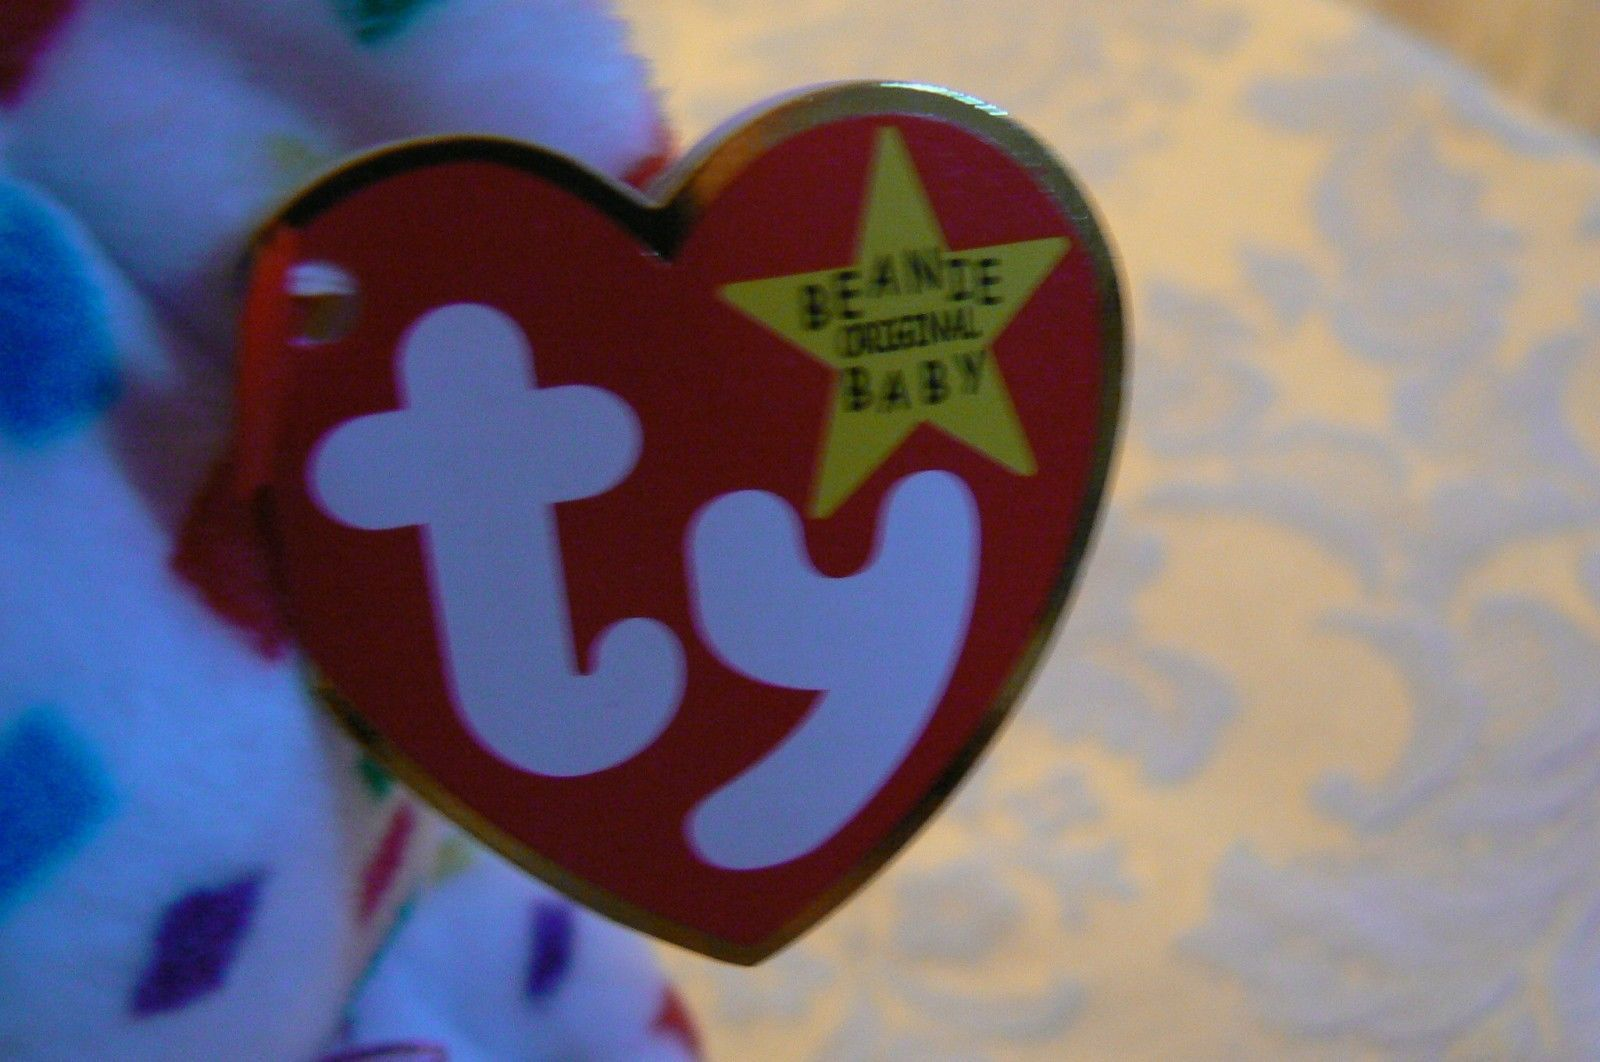 Vintage Ty Beanie Babies Ty 2k 1999/2000 Errors #1 image 7